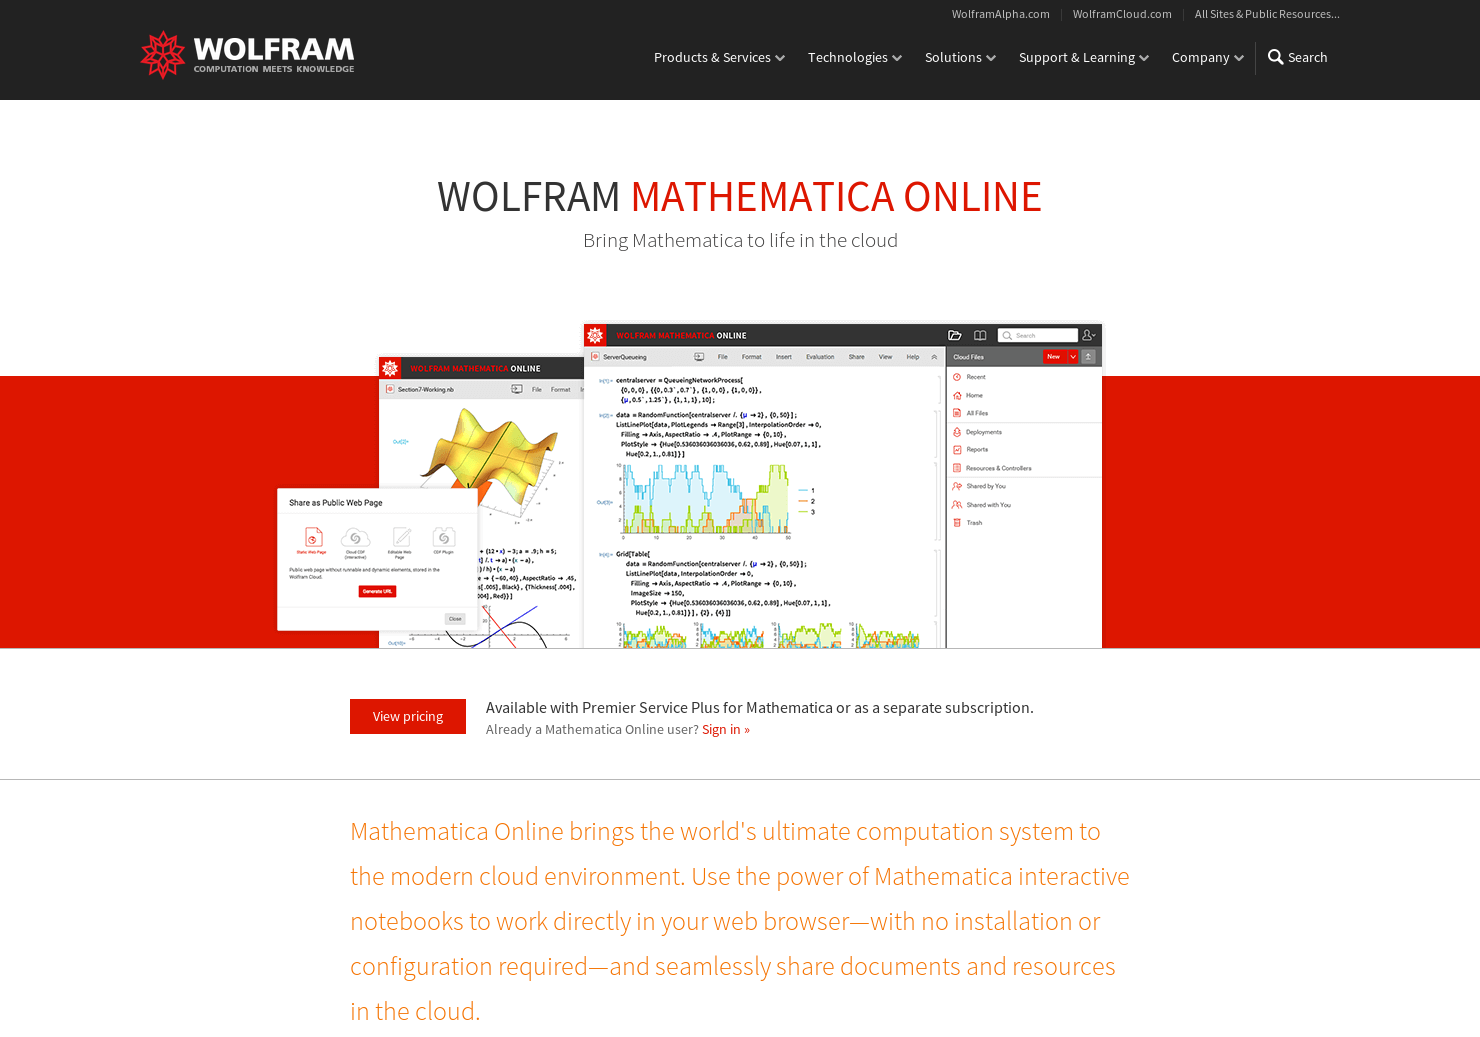 Mathematica Online - Bring Mathematica to life in the cloud